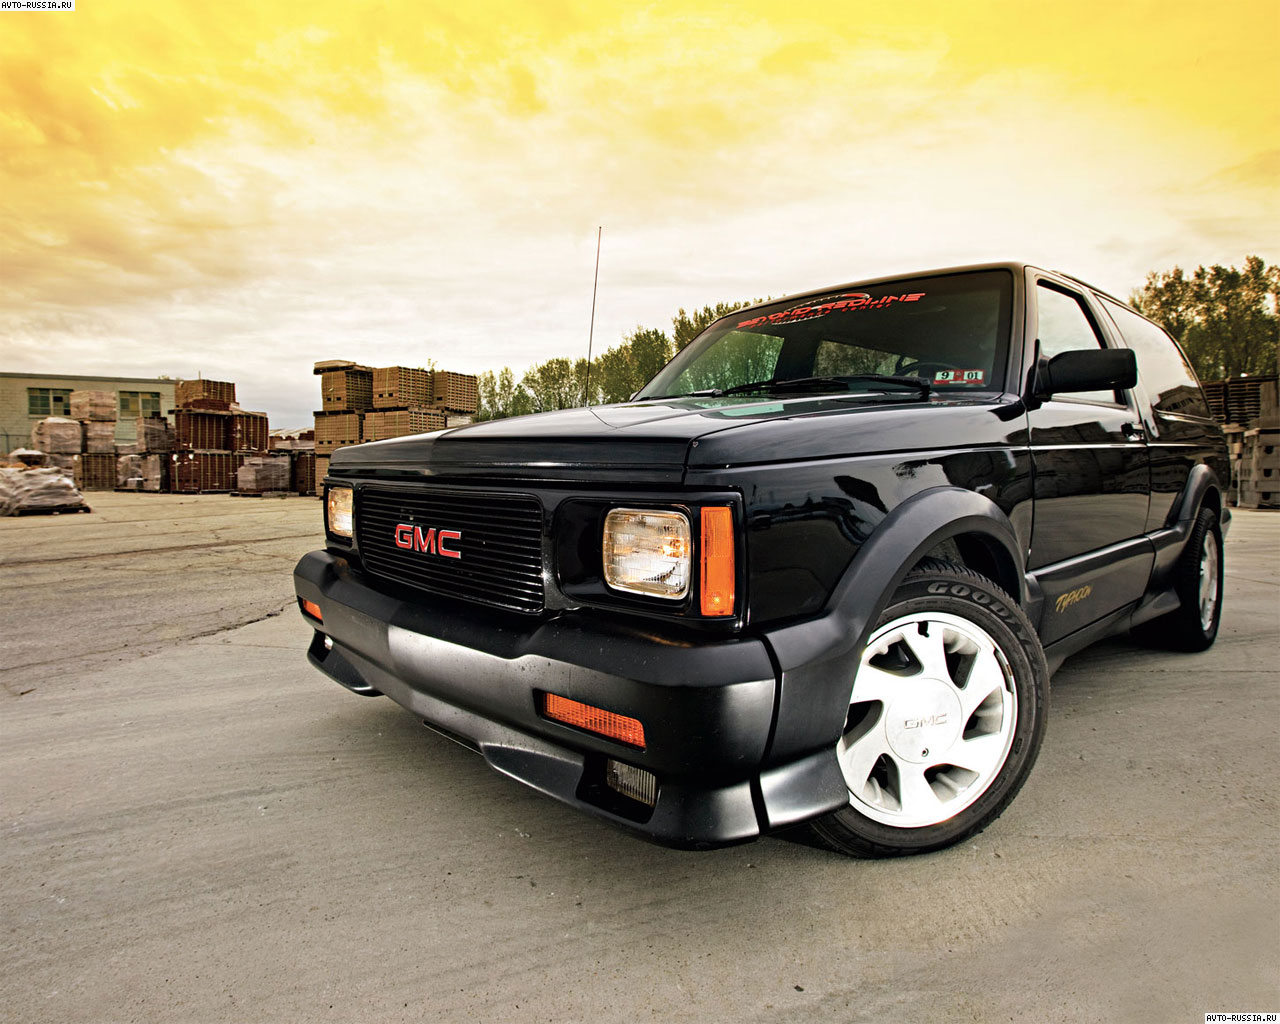 Gmc typhoon photo - 2